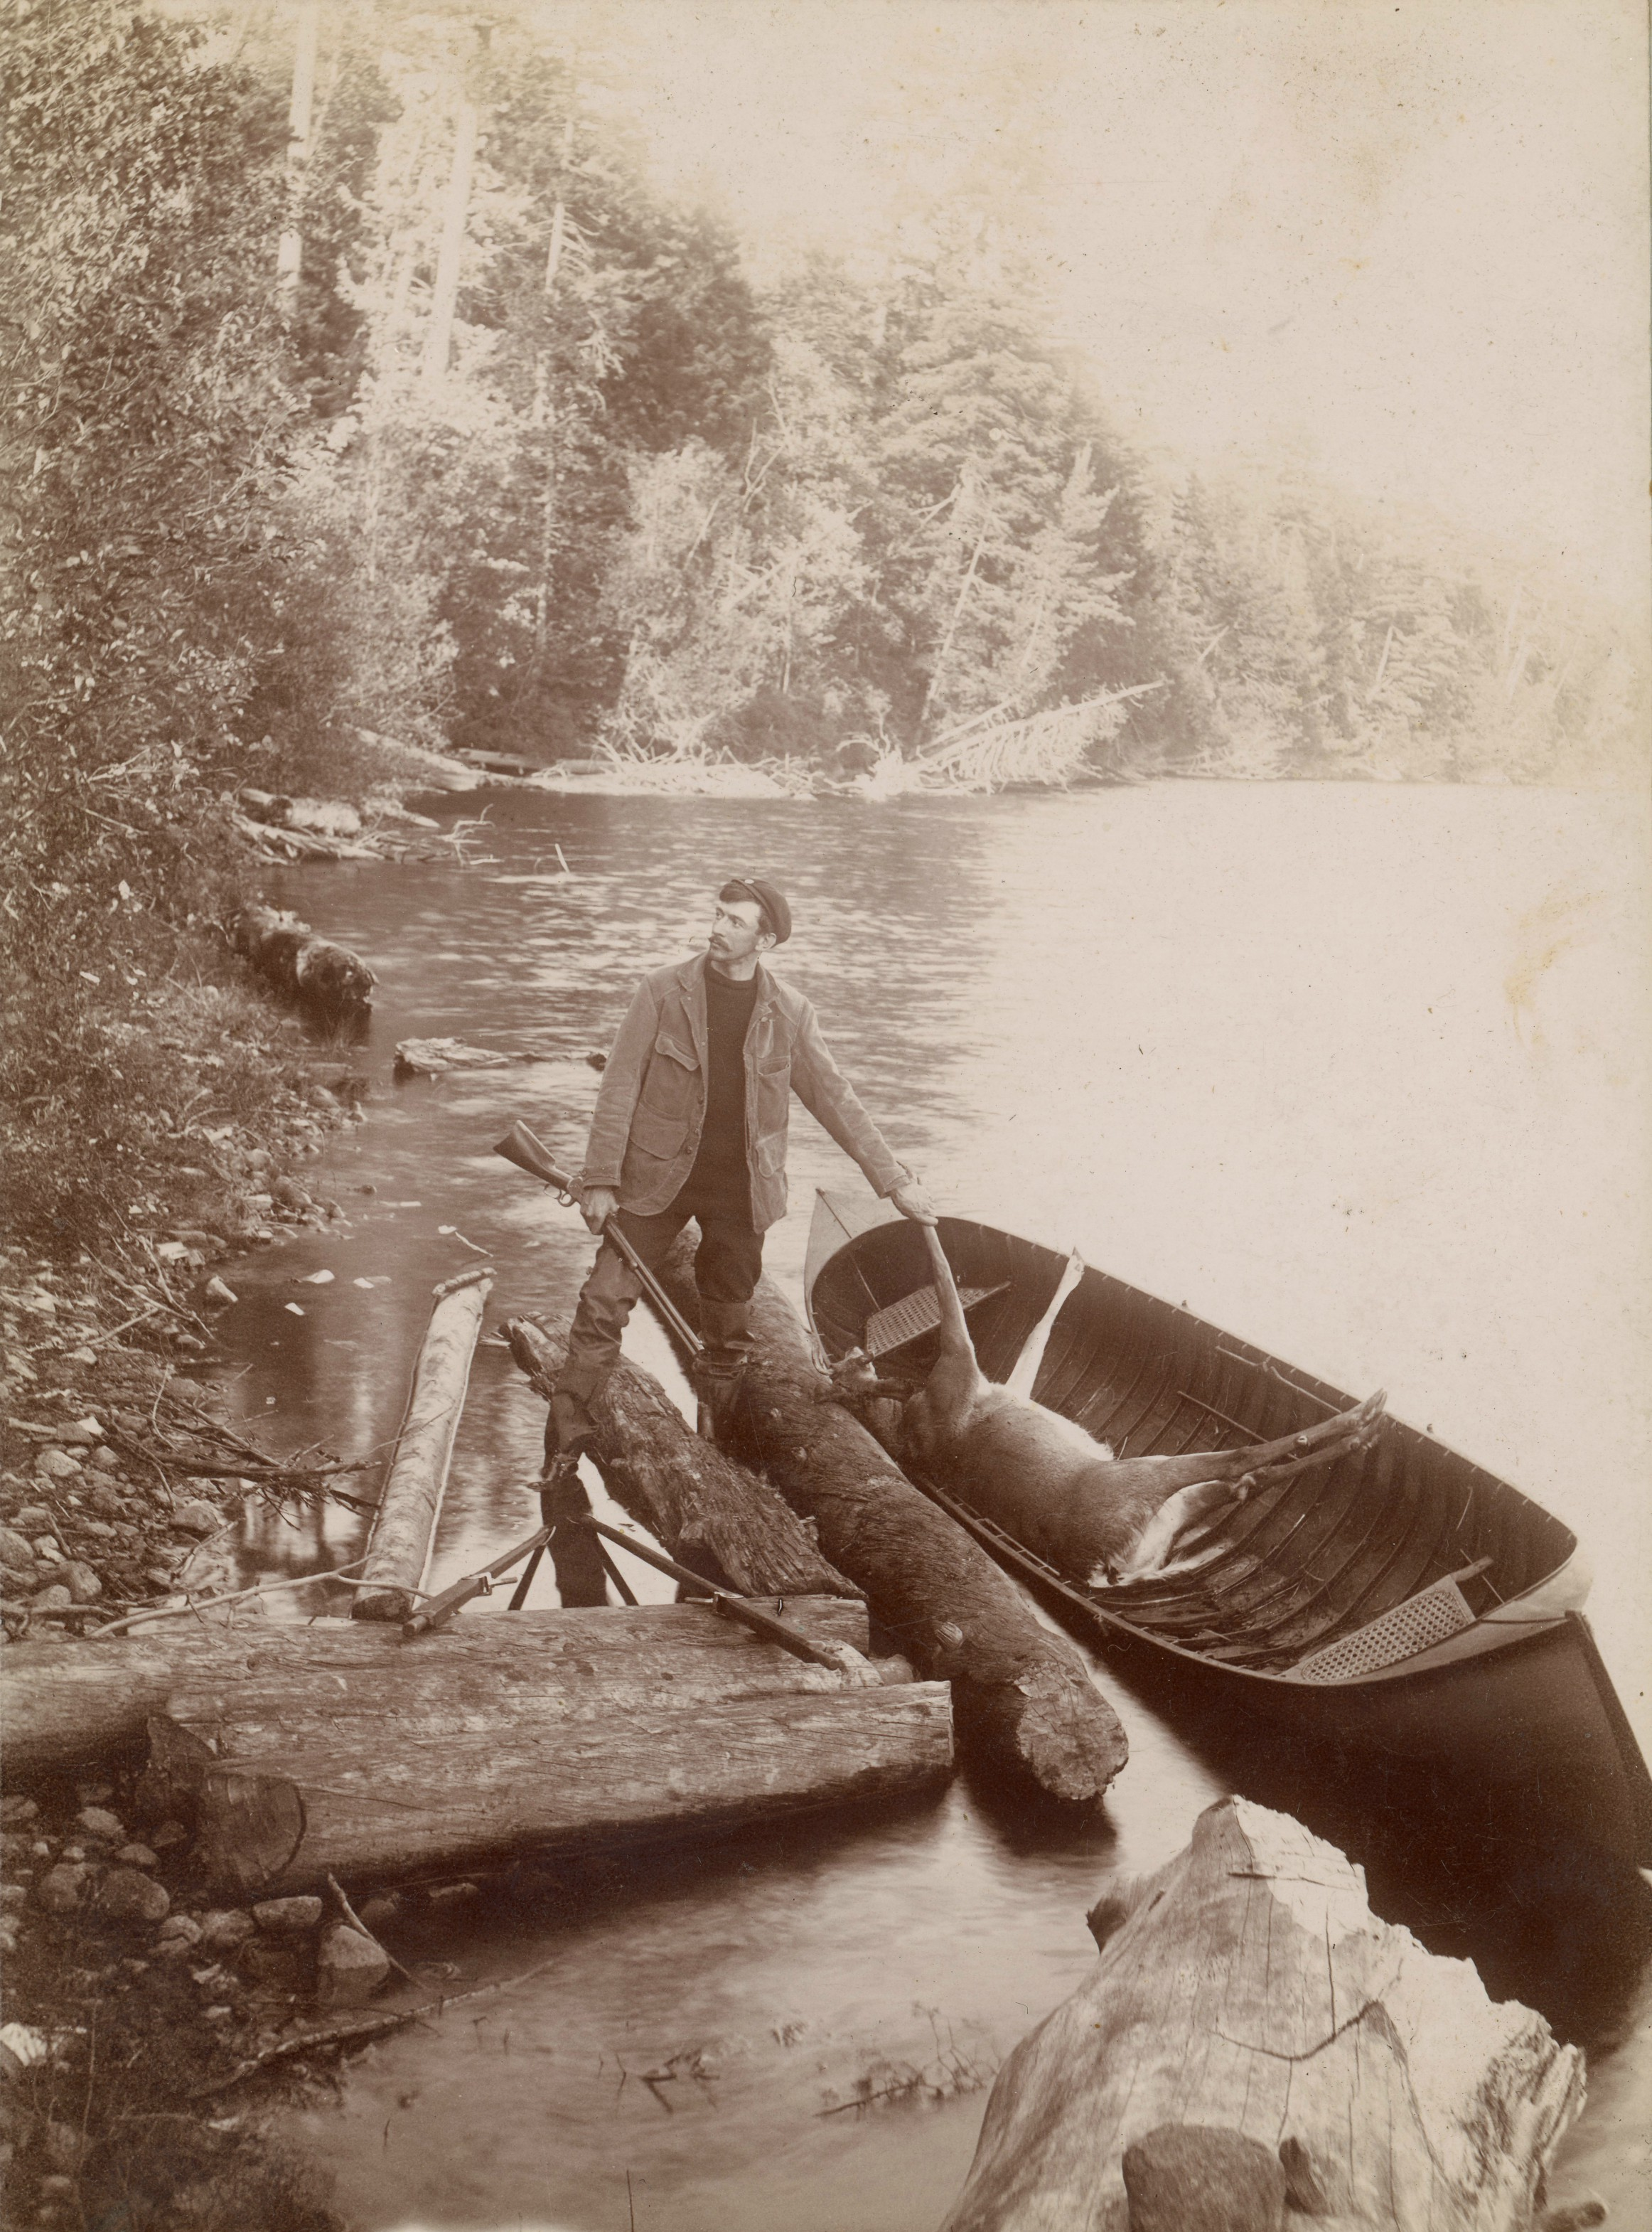 An Adirondack guide and his guide boat at Twitchell Lake ...